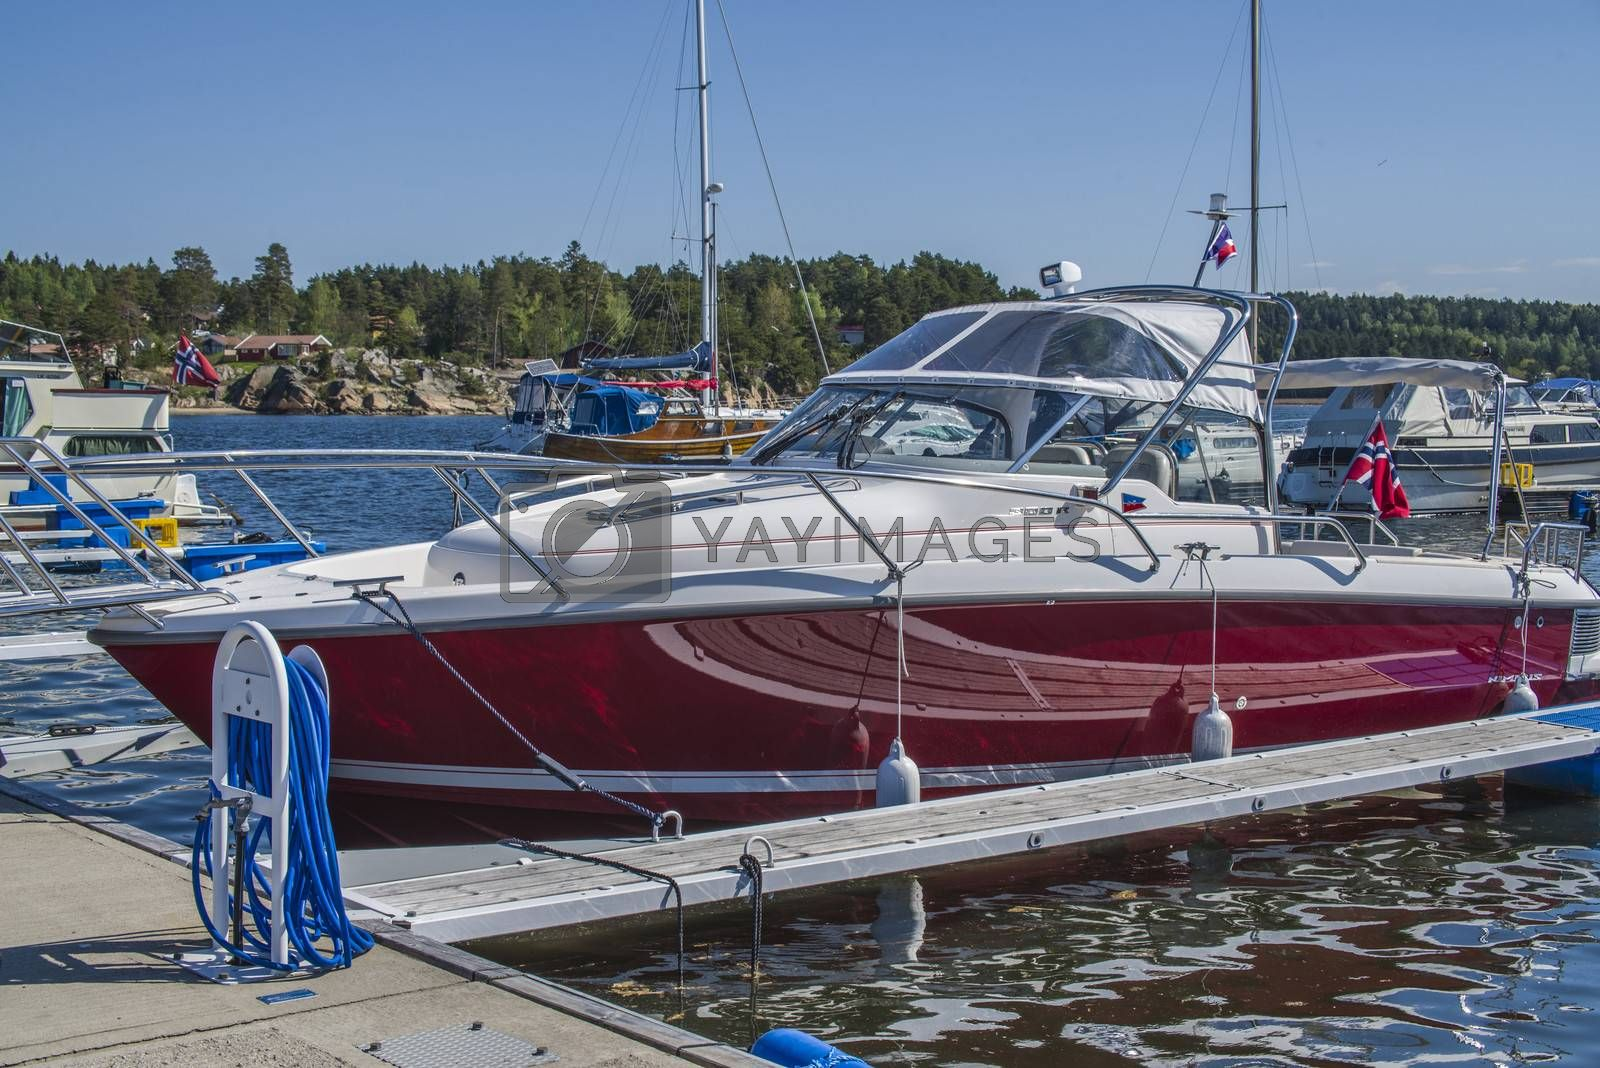 The boat is moored to the dock at the Osco marina in Halden, Norway.